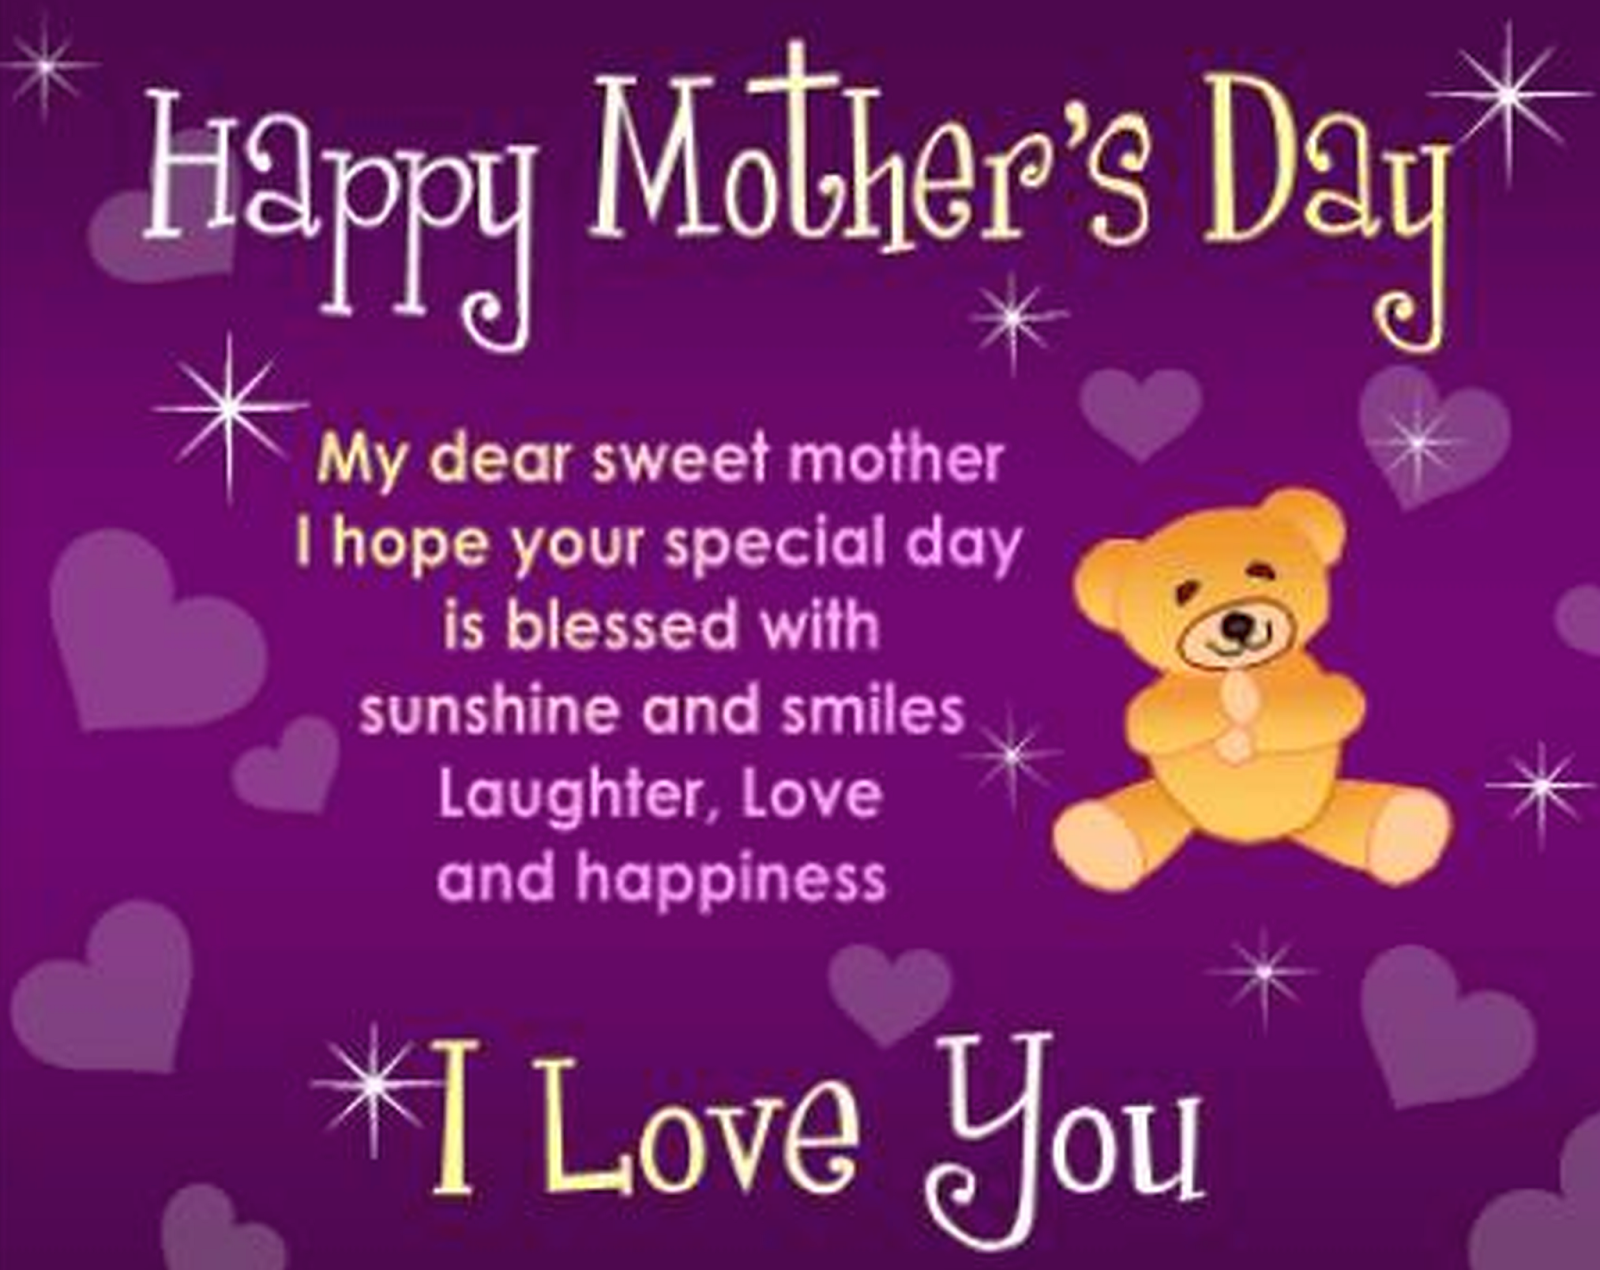 Happy Mothers Day Wallpaper Galaxy S9 1600x1270